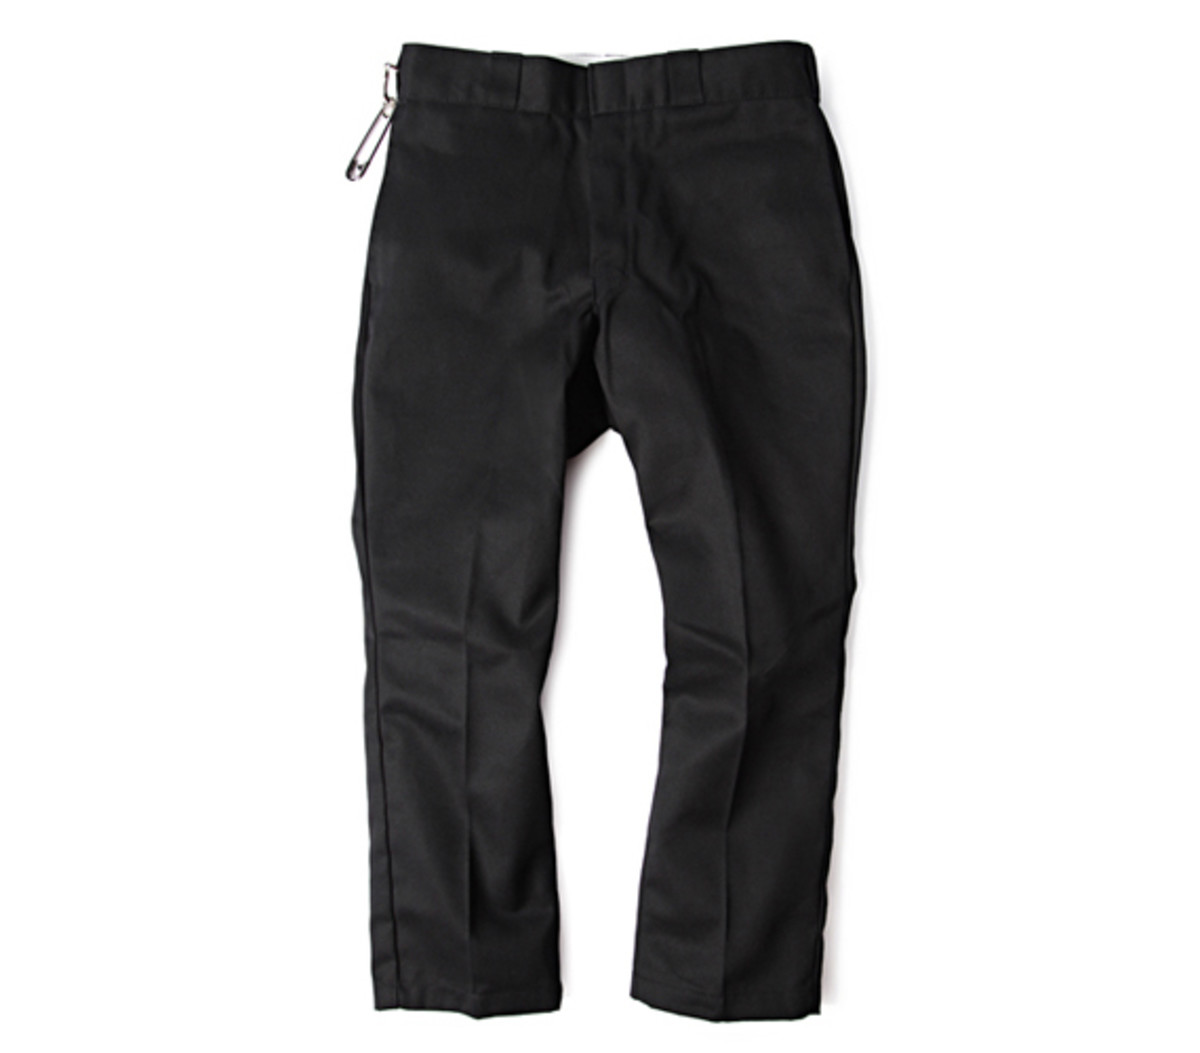 jam-home-made-dickies-customized-jodhpurs-work-pants-04